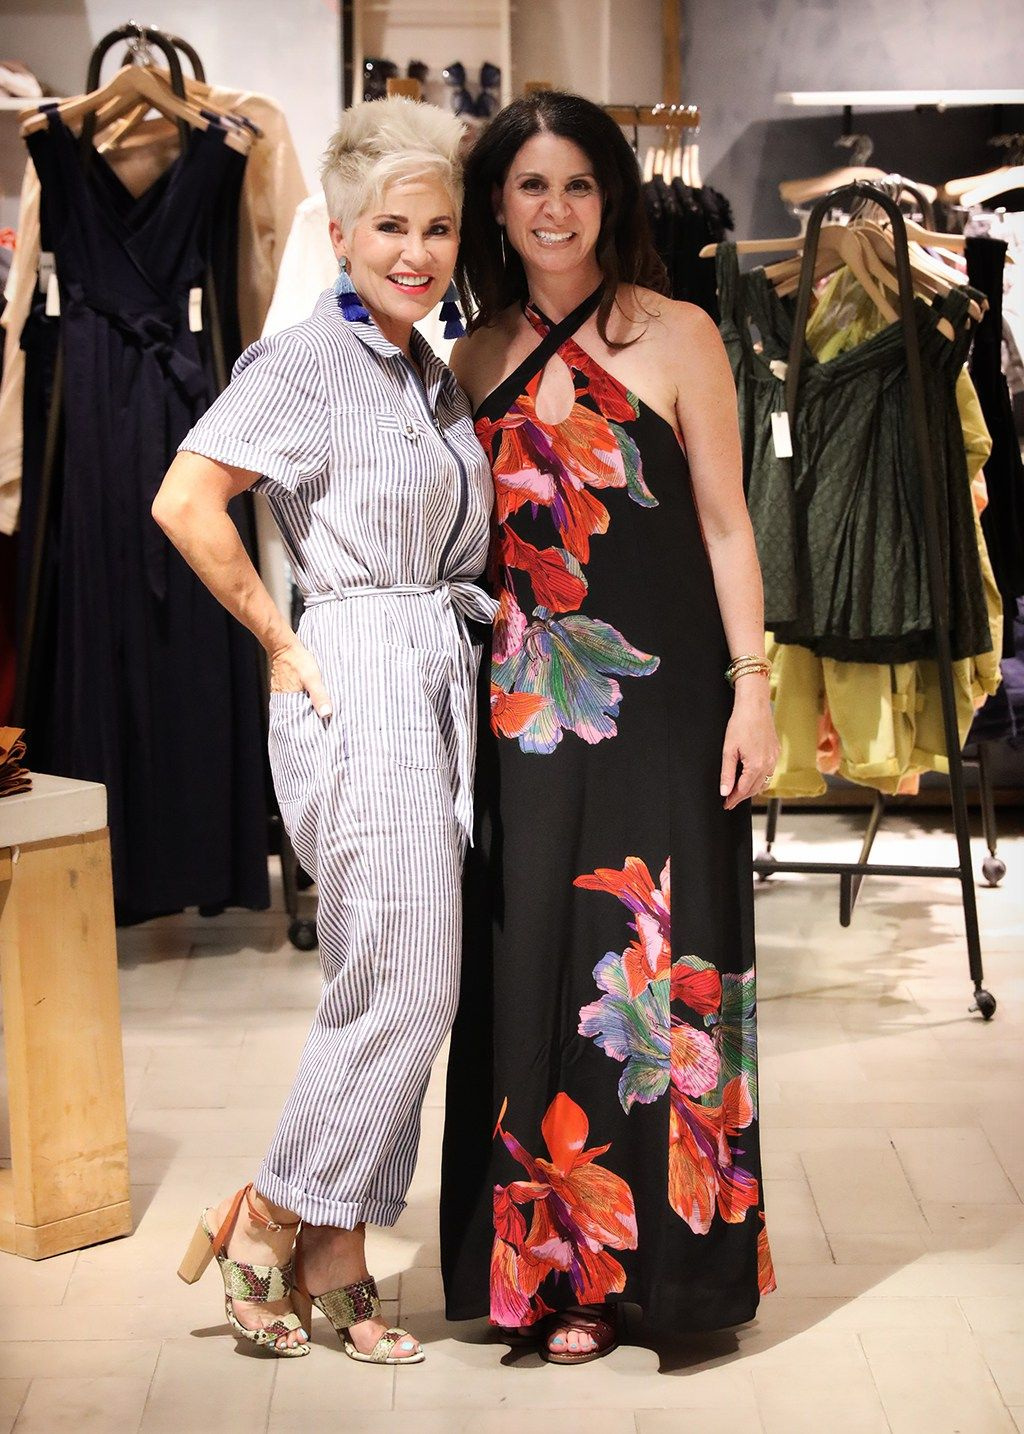 Re-capping Anthropologie's Summer Fashion Show the other night! It was another fantastic event put on by some amazing girls! Way…